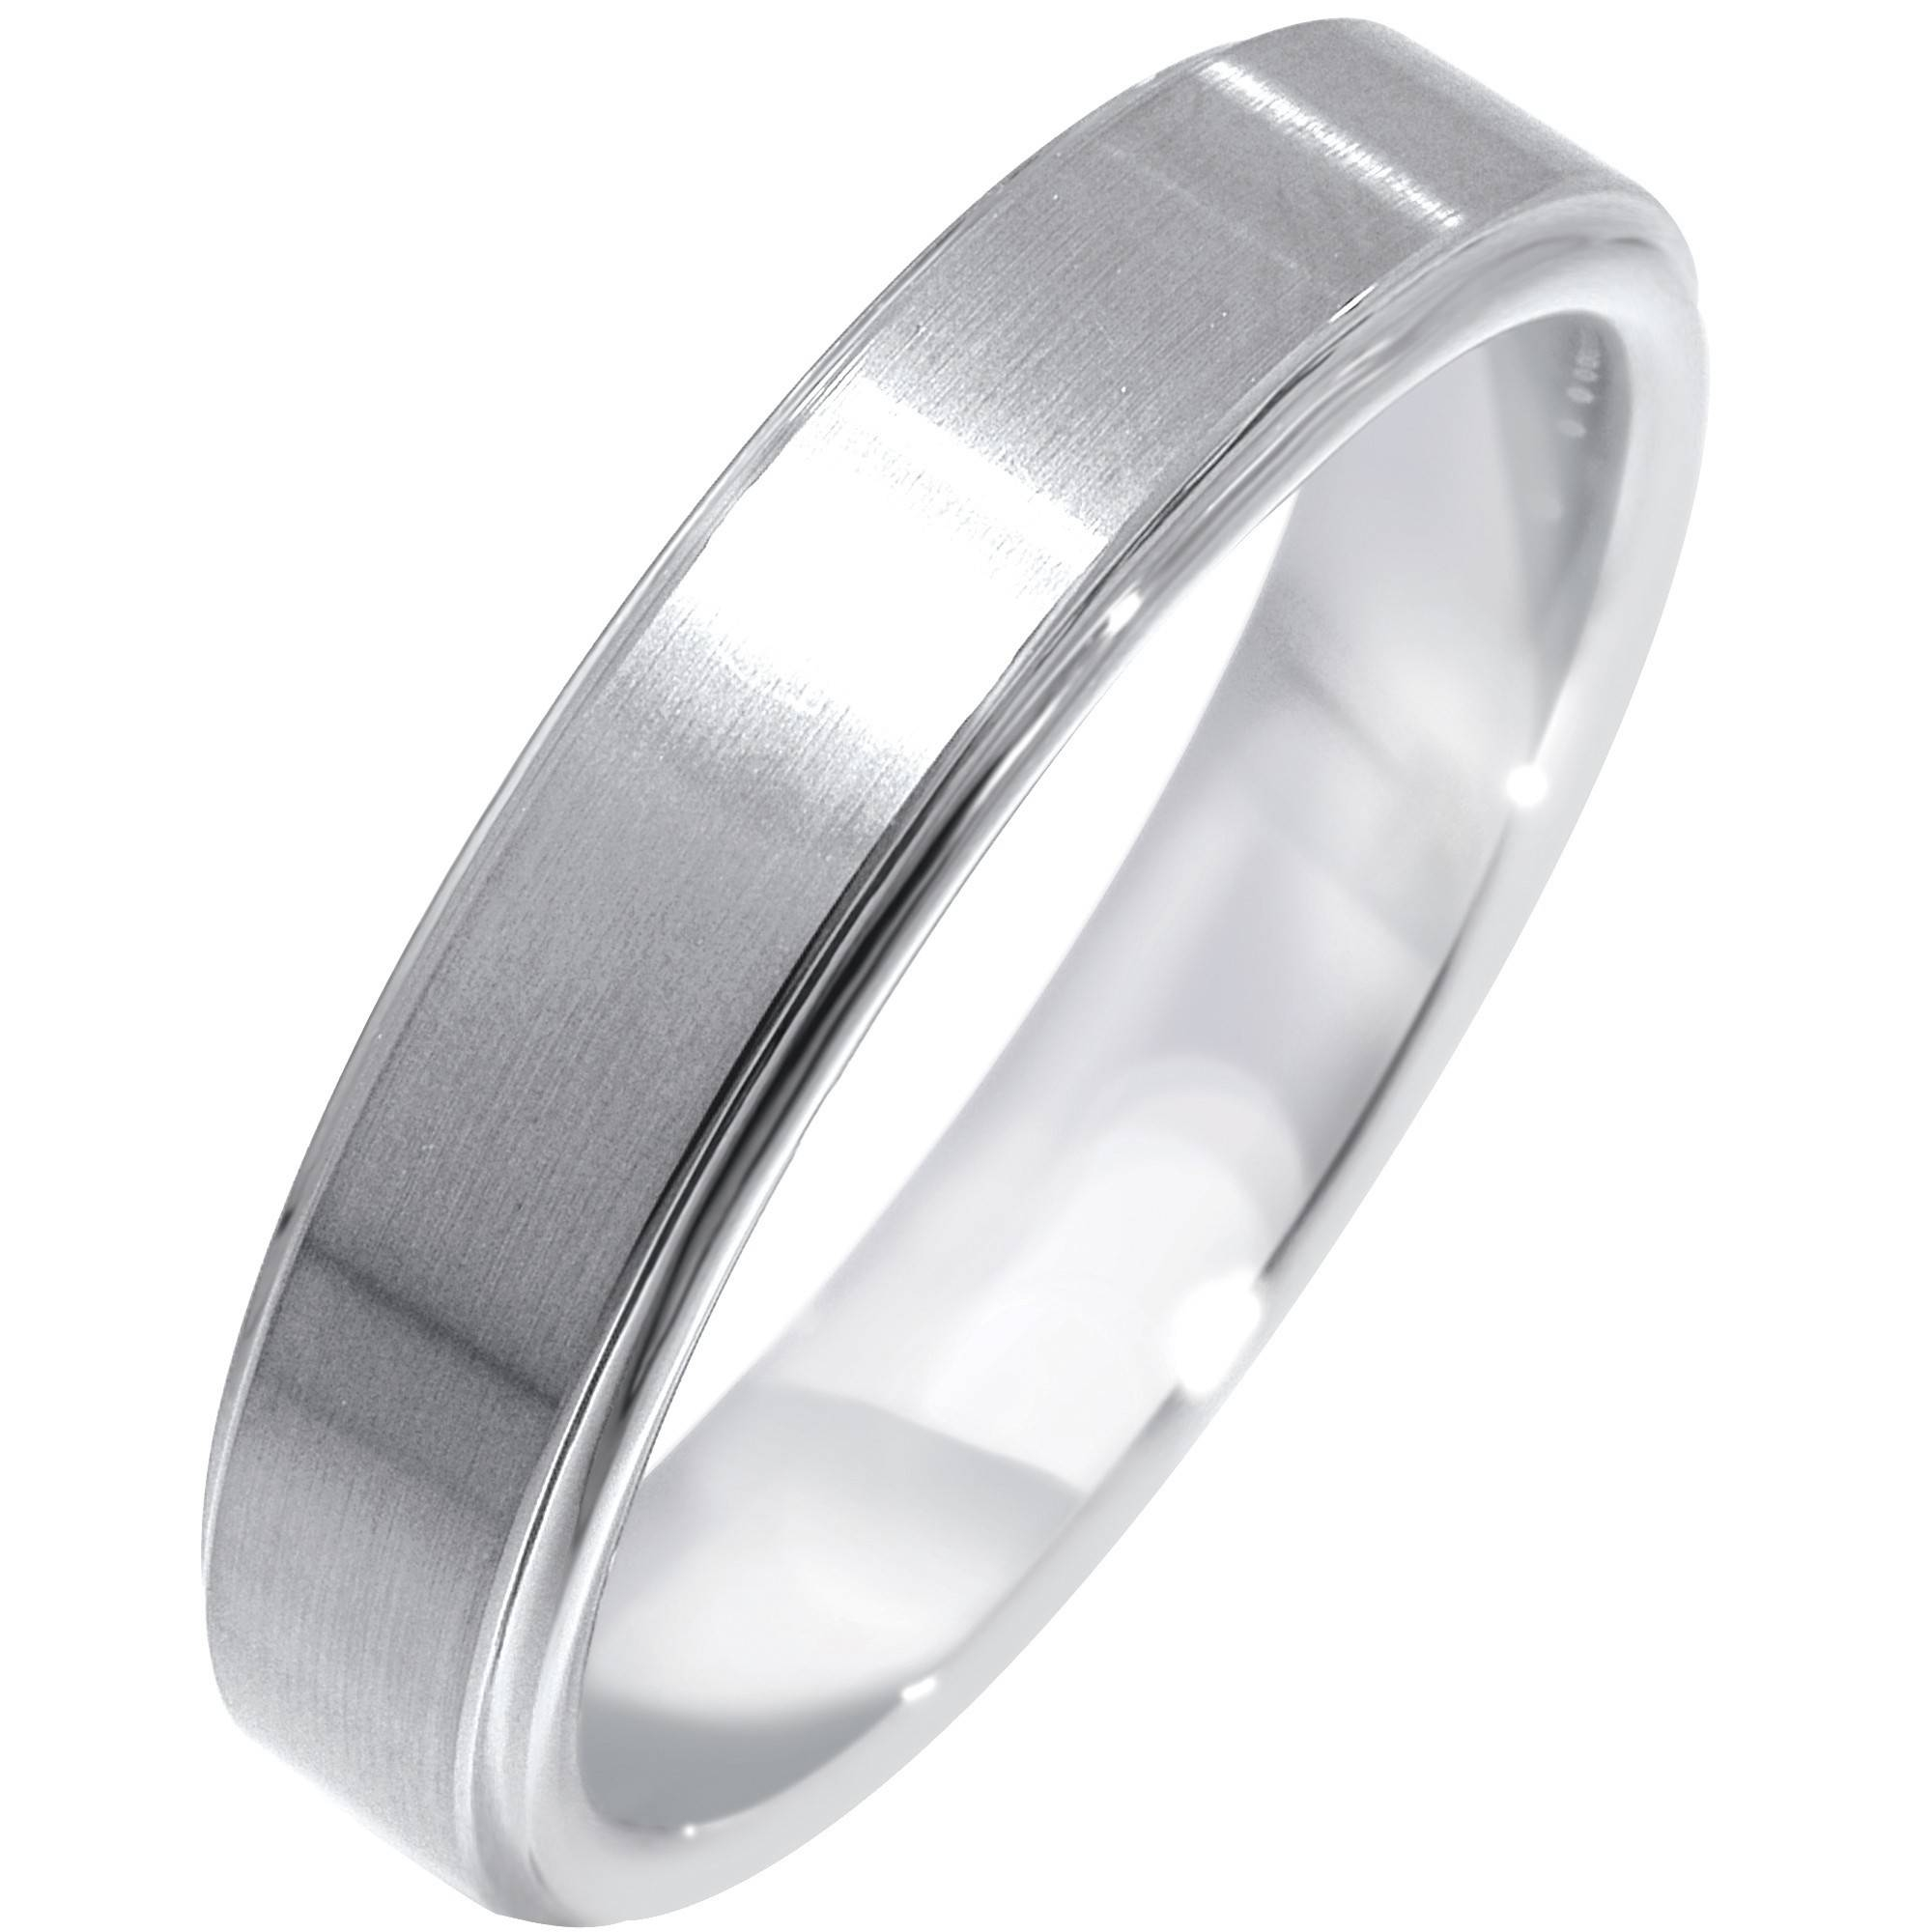 Artcarved Lowell Mens Carved Wedding Band In Tungsten Carbide (5Mm) With Regard To Artcarved Men Wedding Bands (View 6 of 15)